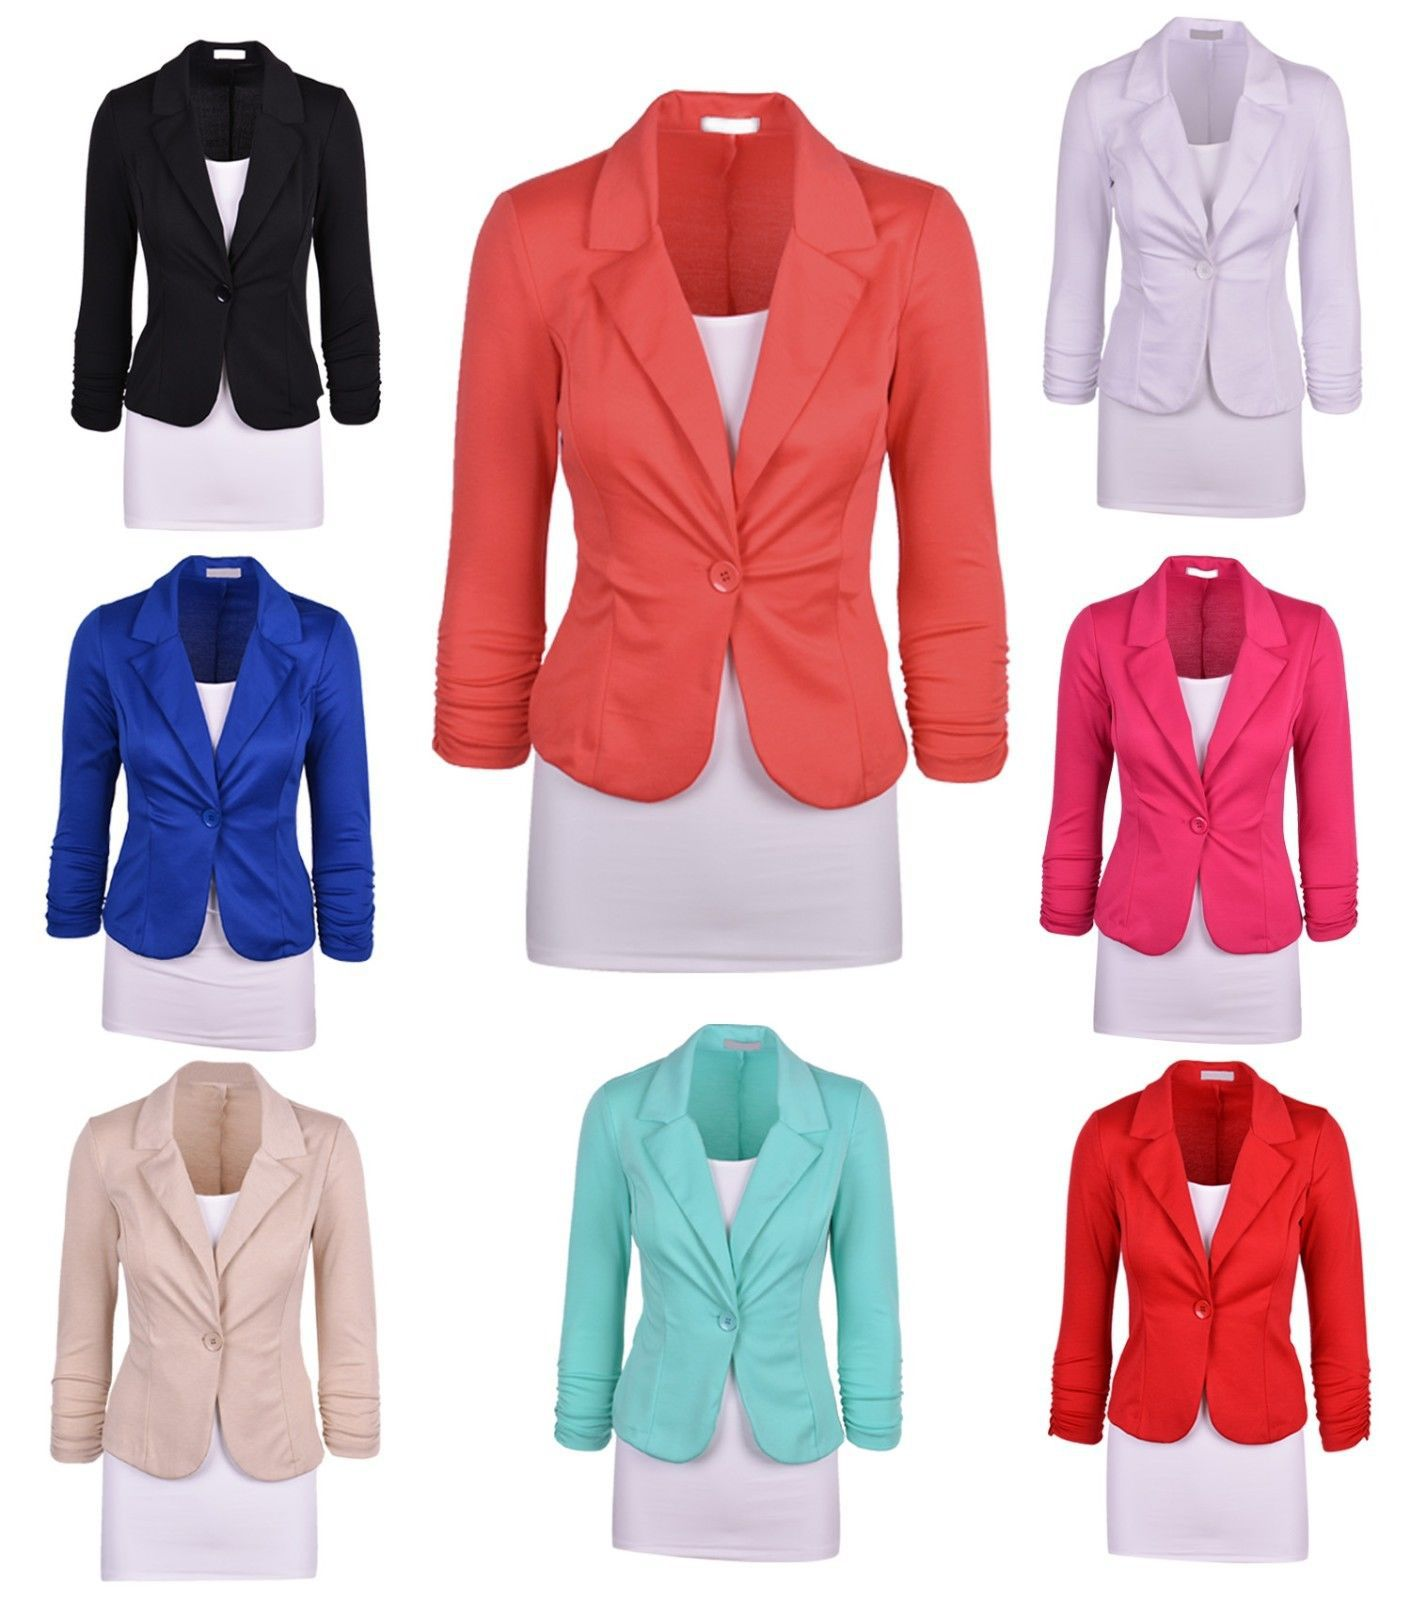 cd69bb1bb6a2 Details about Women s Female Formal or Casual Blazers Jacket Coat Outwear  Plus Size